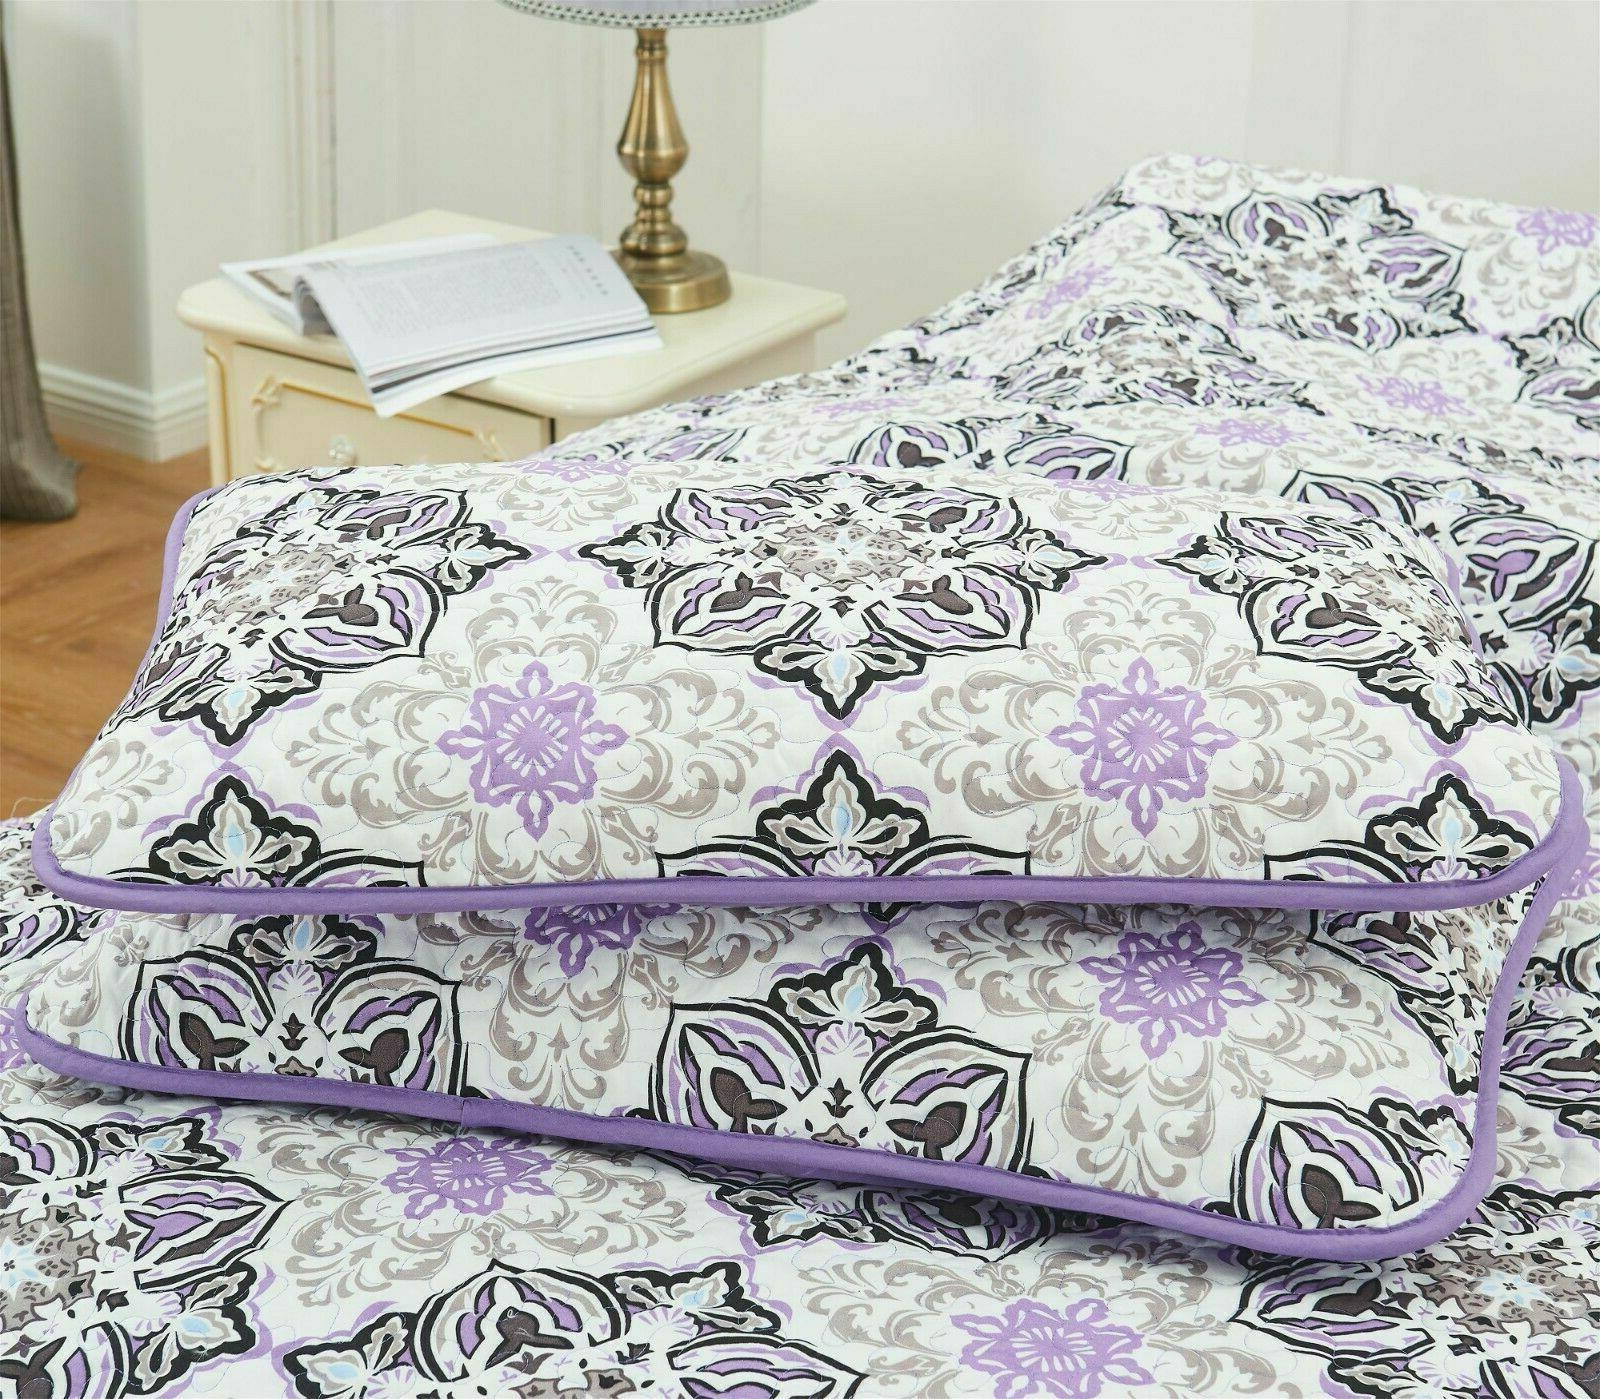 Queen Quilt Bedding Set Printed Quilt King Quilt Bedding Set